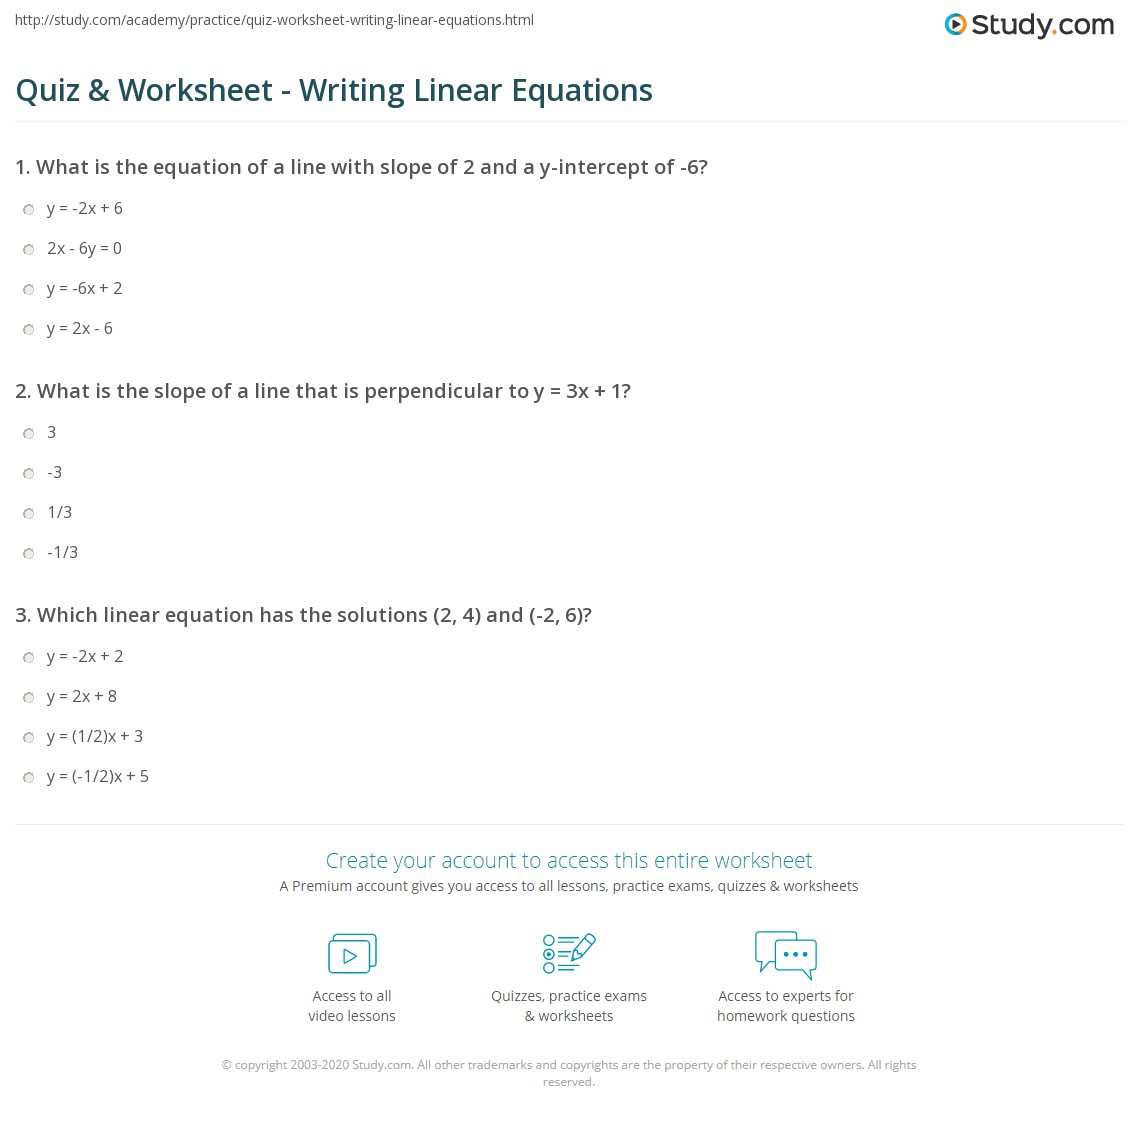 Worksheets Writing Linear Equations Worksheet quiz worksheet writing linear equations study com print how to write a equation worksheet